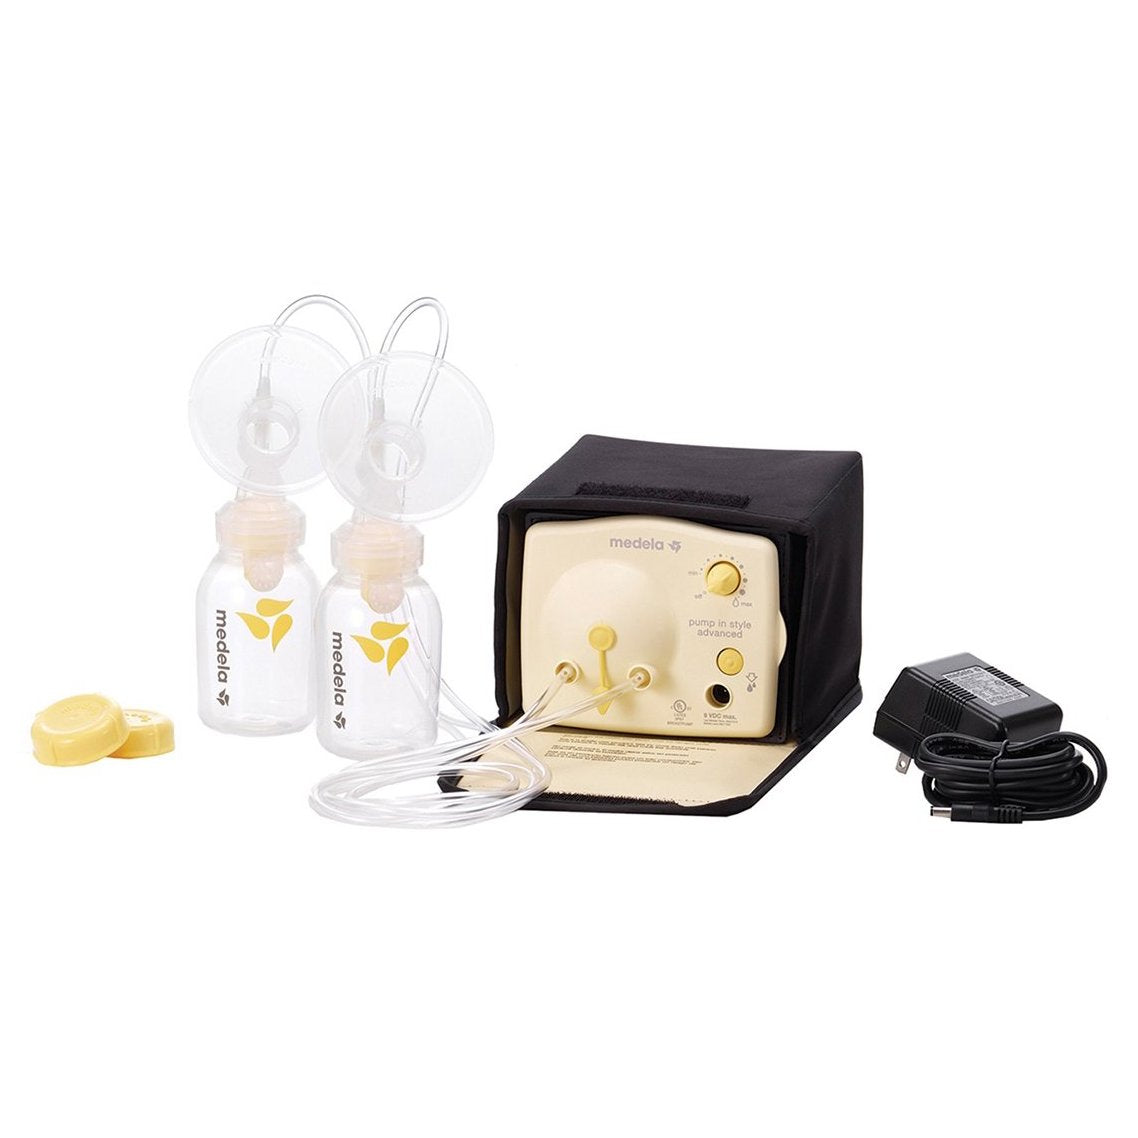 Medela Pump In Style Advanced Breastpump  Tricare -3706